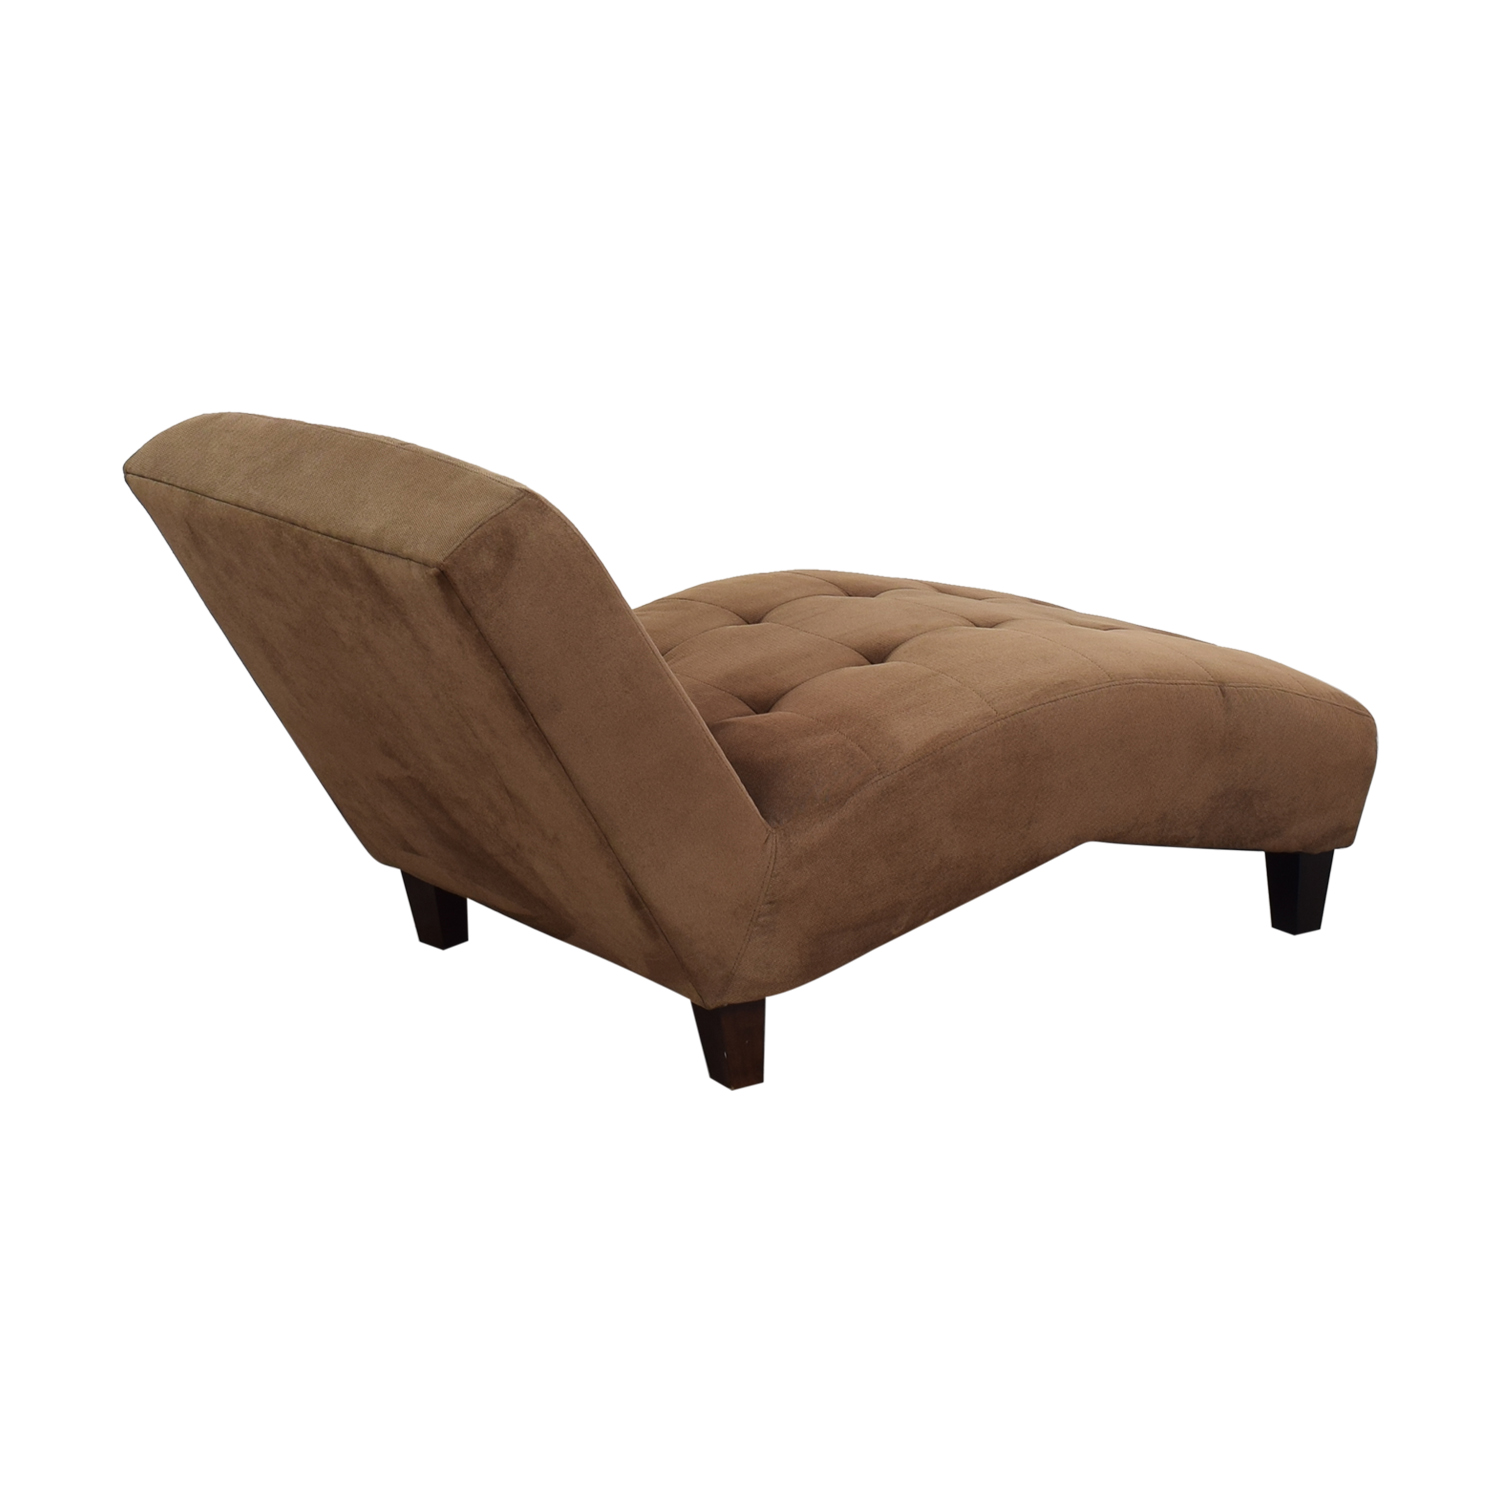 Macy's Macy's Arched Chaise Lounge second hand